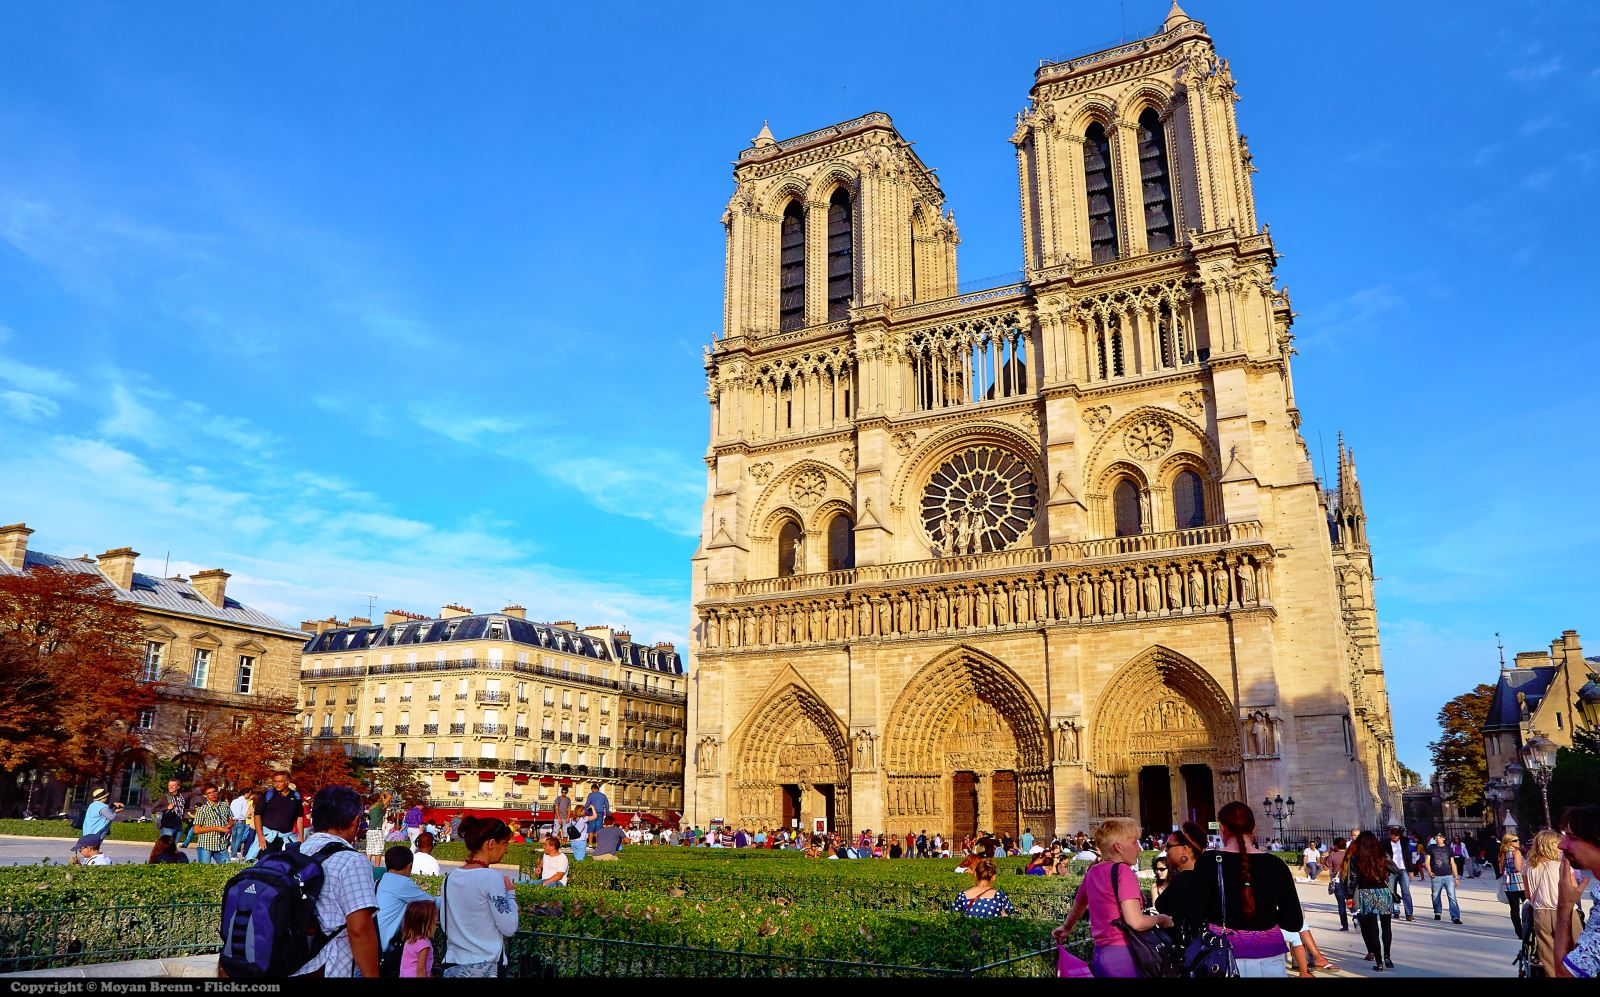 The 10 Things I Always Do In Paris: 10 Hidden Things To Do In Paris